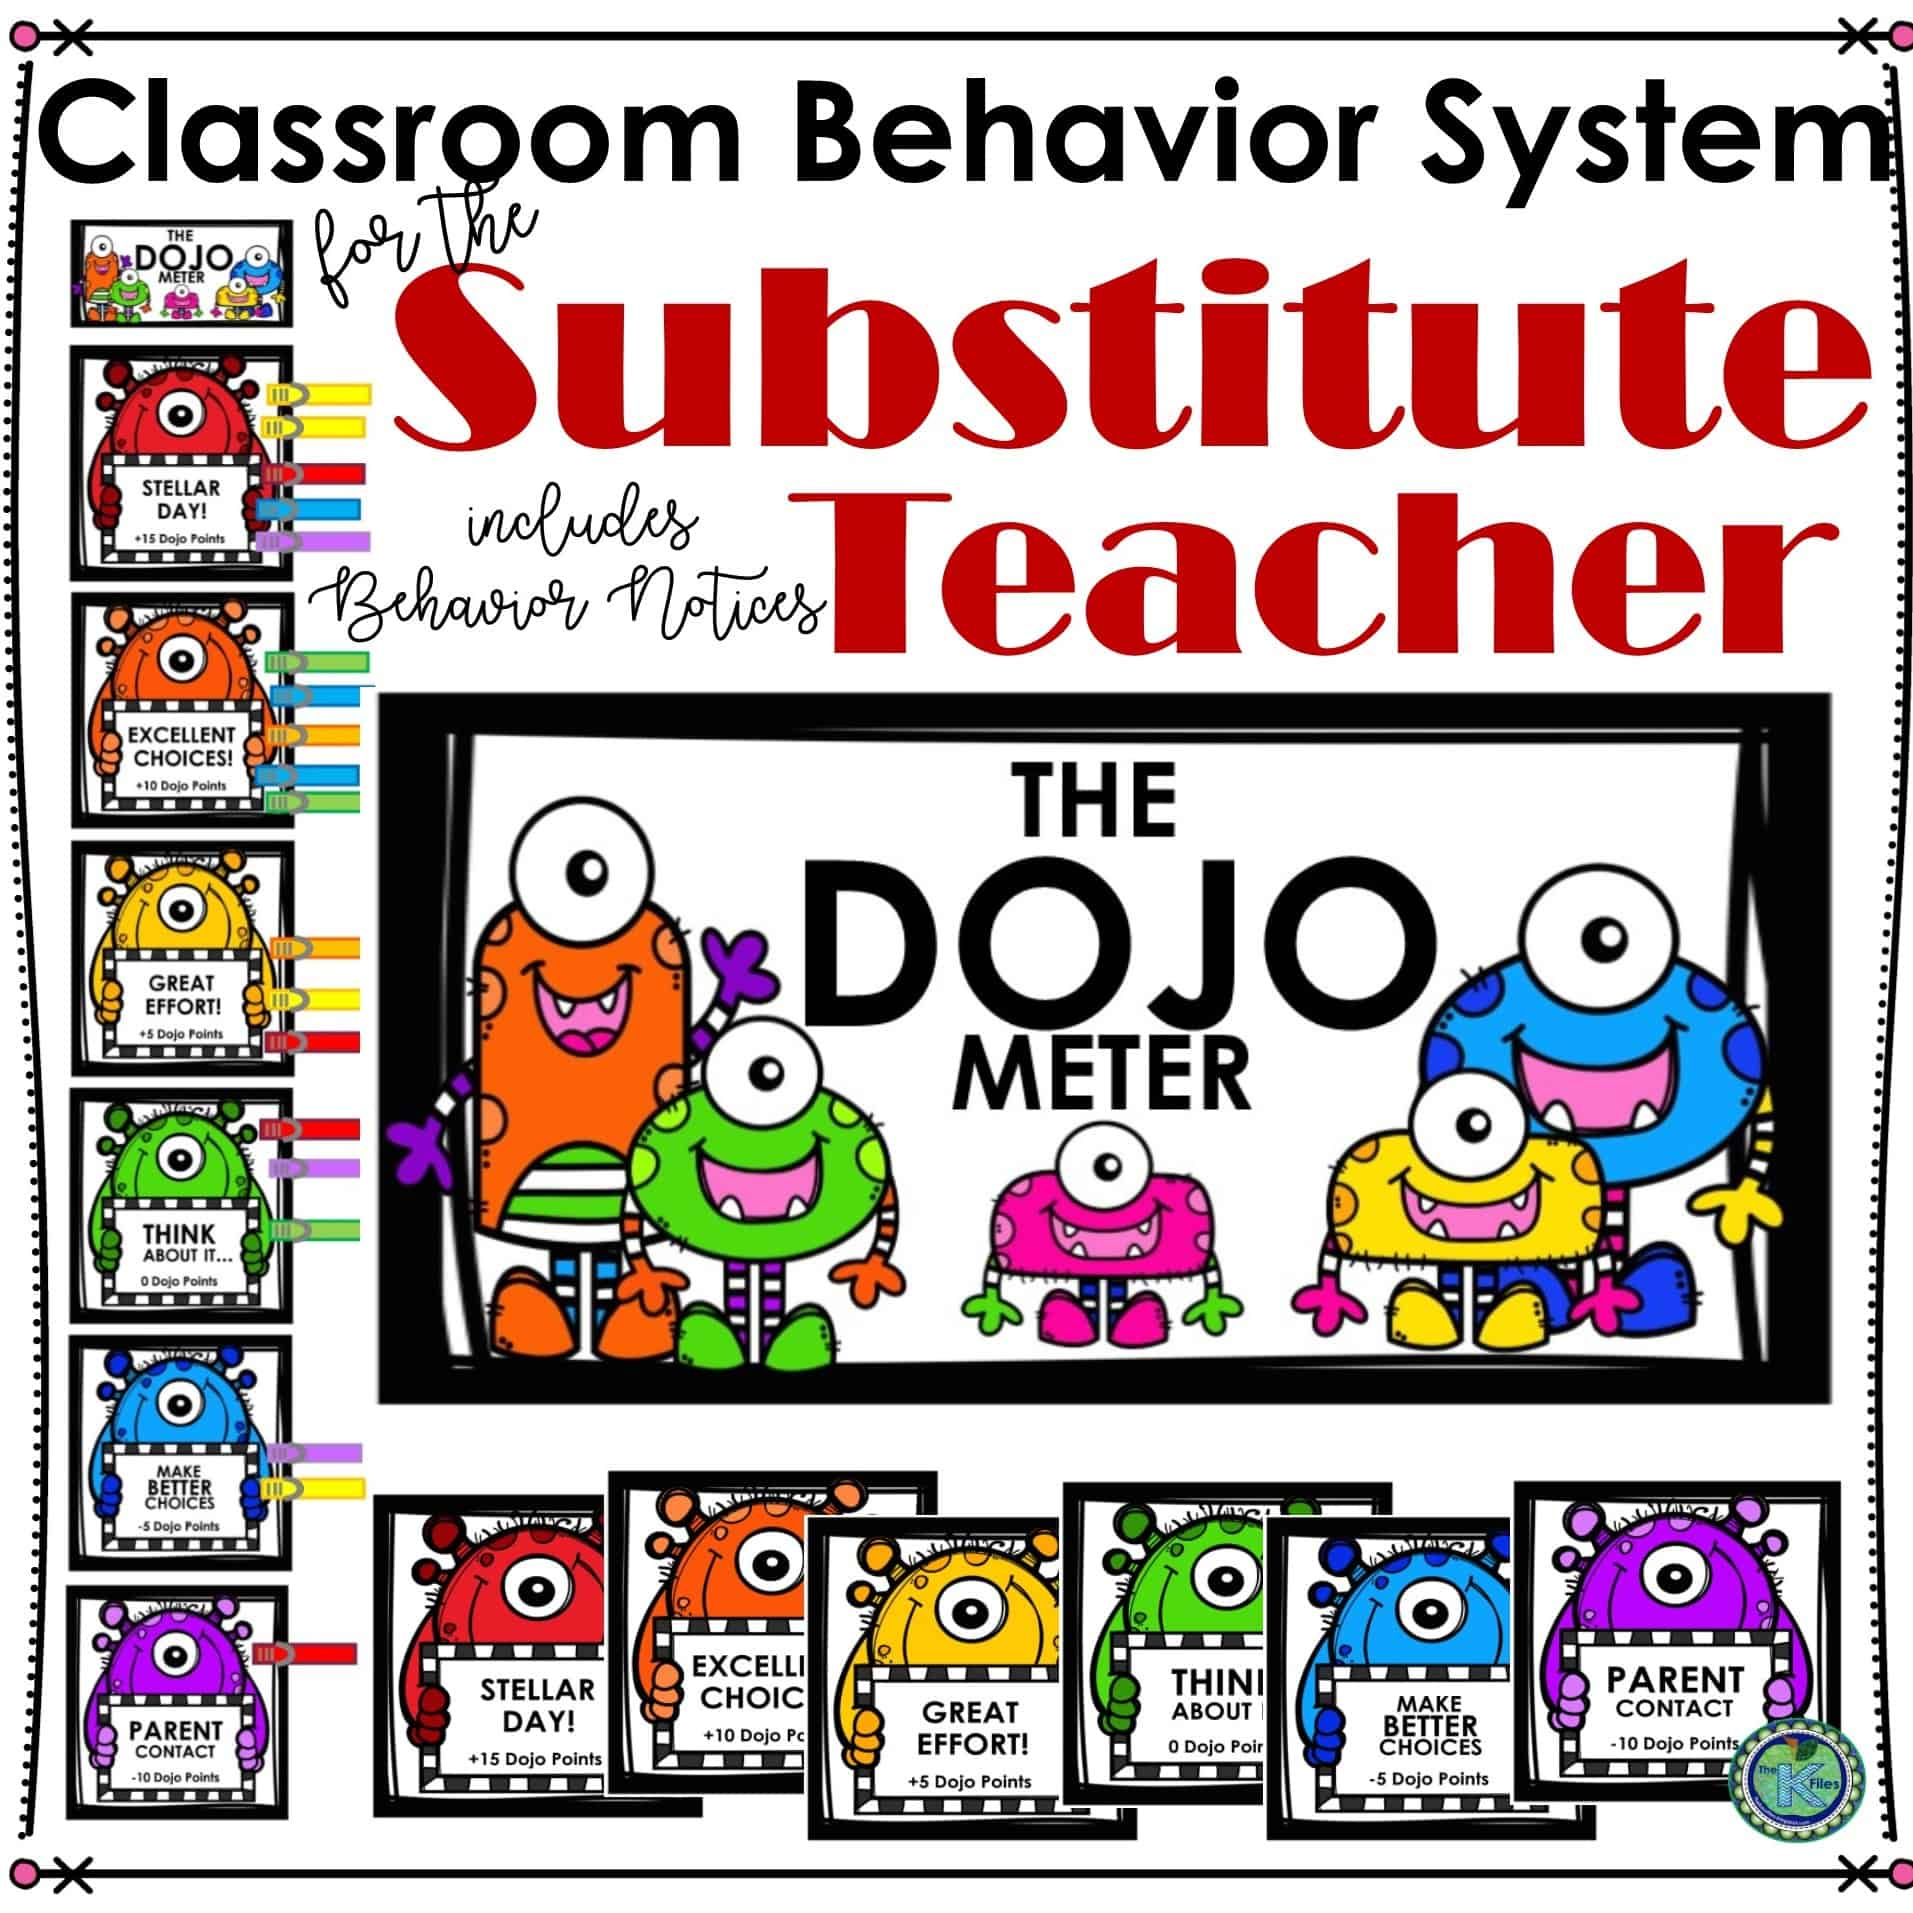 Keep The Dojo Meter in your Sub Tub or alongside your substitute plans. This will hold your students accountable for their behavior in your absence. Your sub will thank you for this classroom behavior management system as they navigate through the school day. Included are 6 monster themed clip charts and title card. As a bonus: included 2 parent contact forms that your substitute may send home to communicate student behaviors.